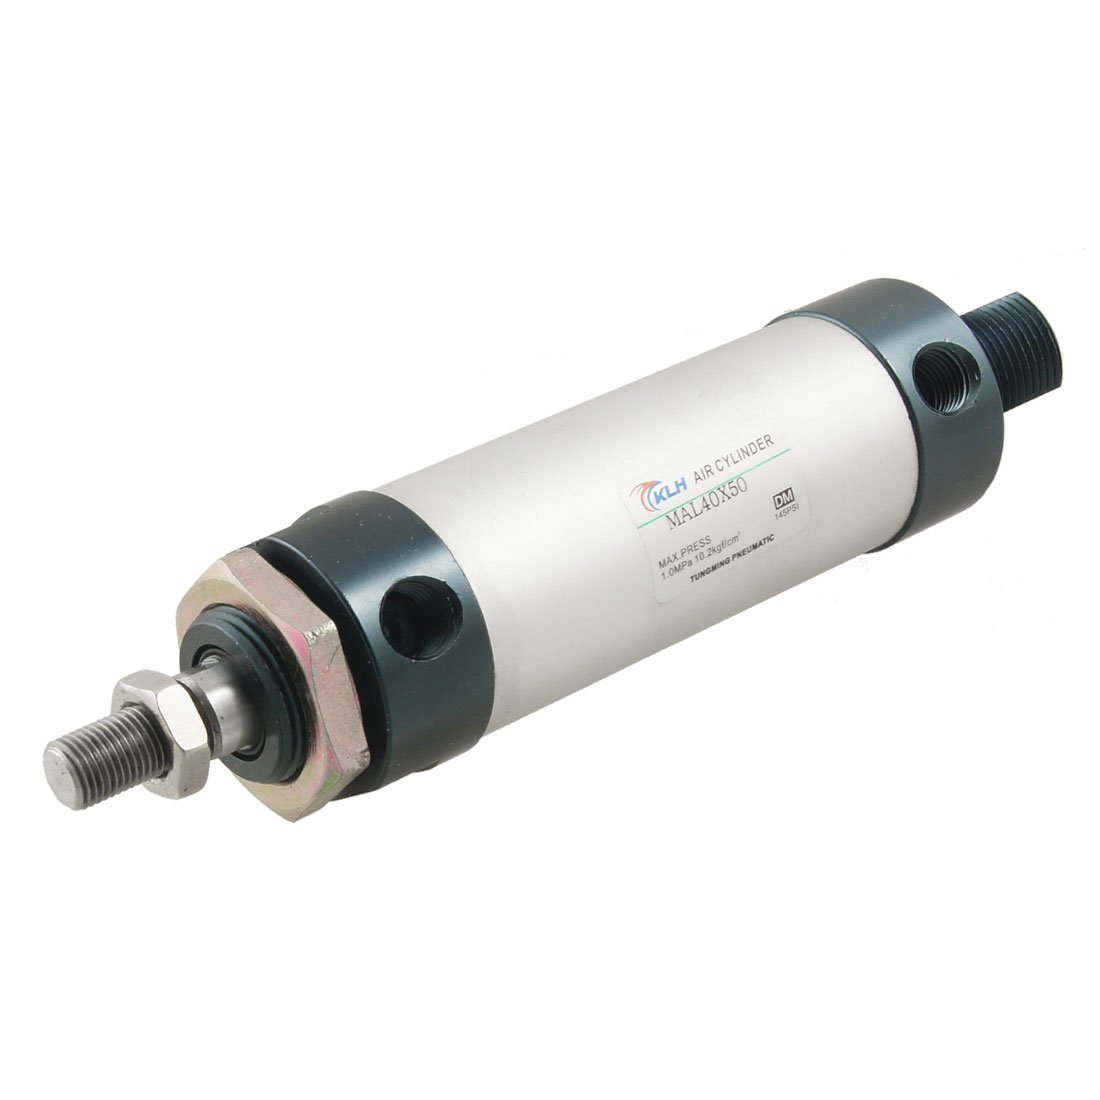 sourcingmap® MAL40x50 40mm Bore 50mm Stroke Single Rod Double Action Air Cylinder a12051400ux0178